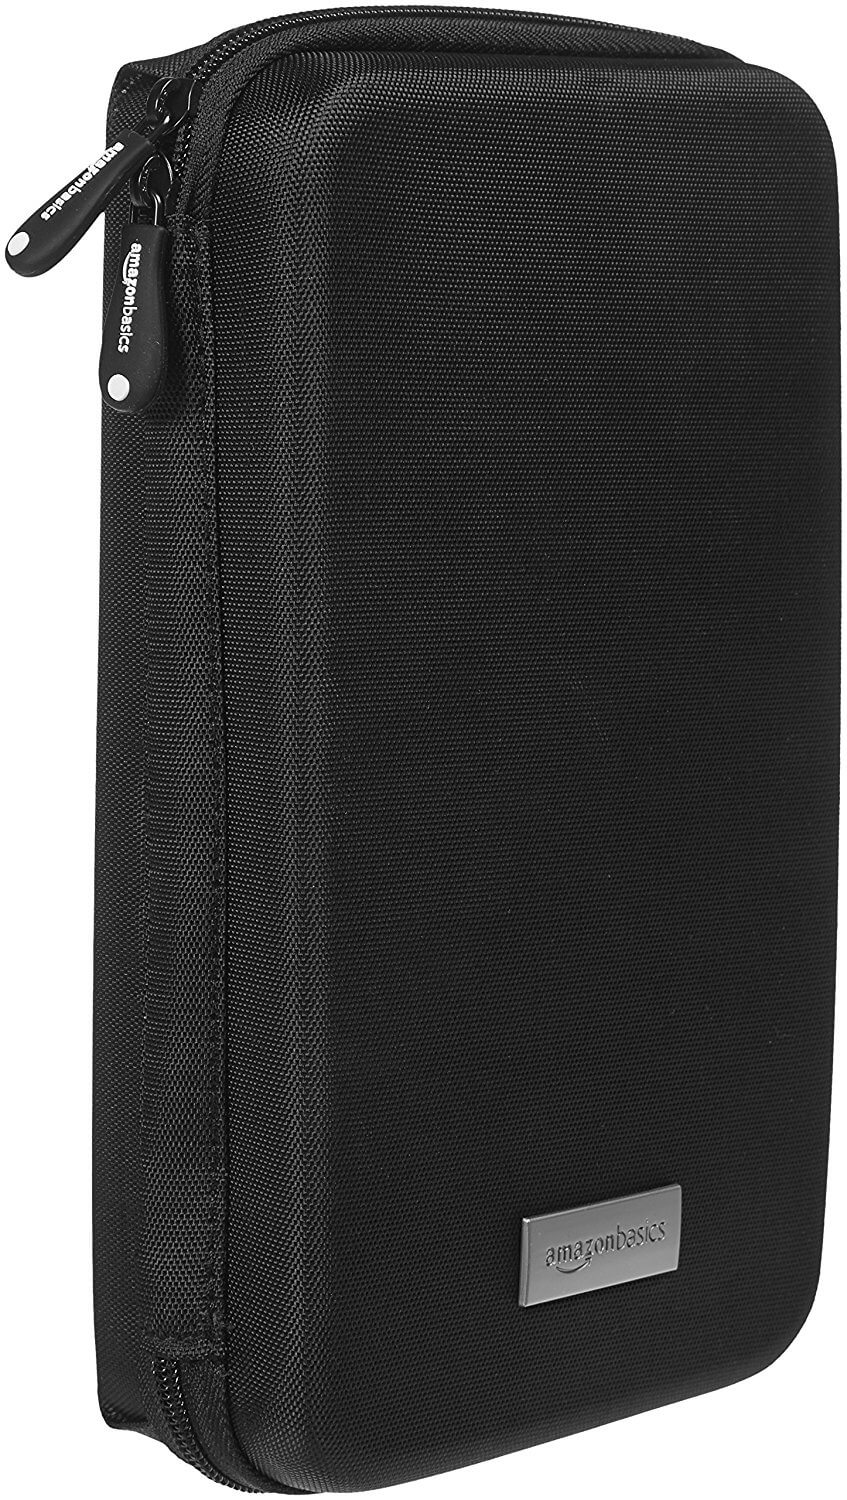 AmazonBasics Universal Travel Case for Small Electronics & Accessories